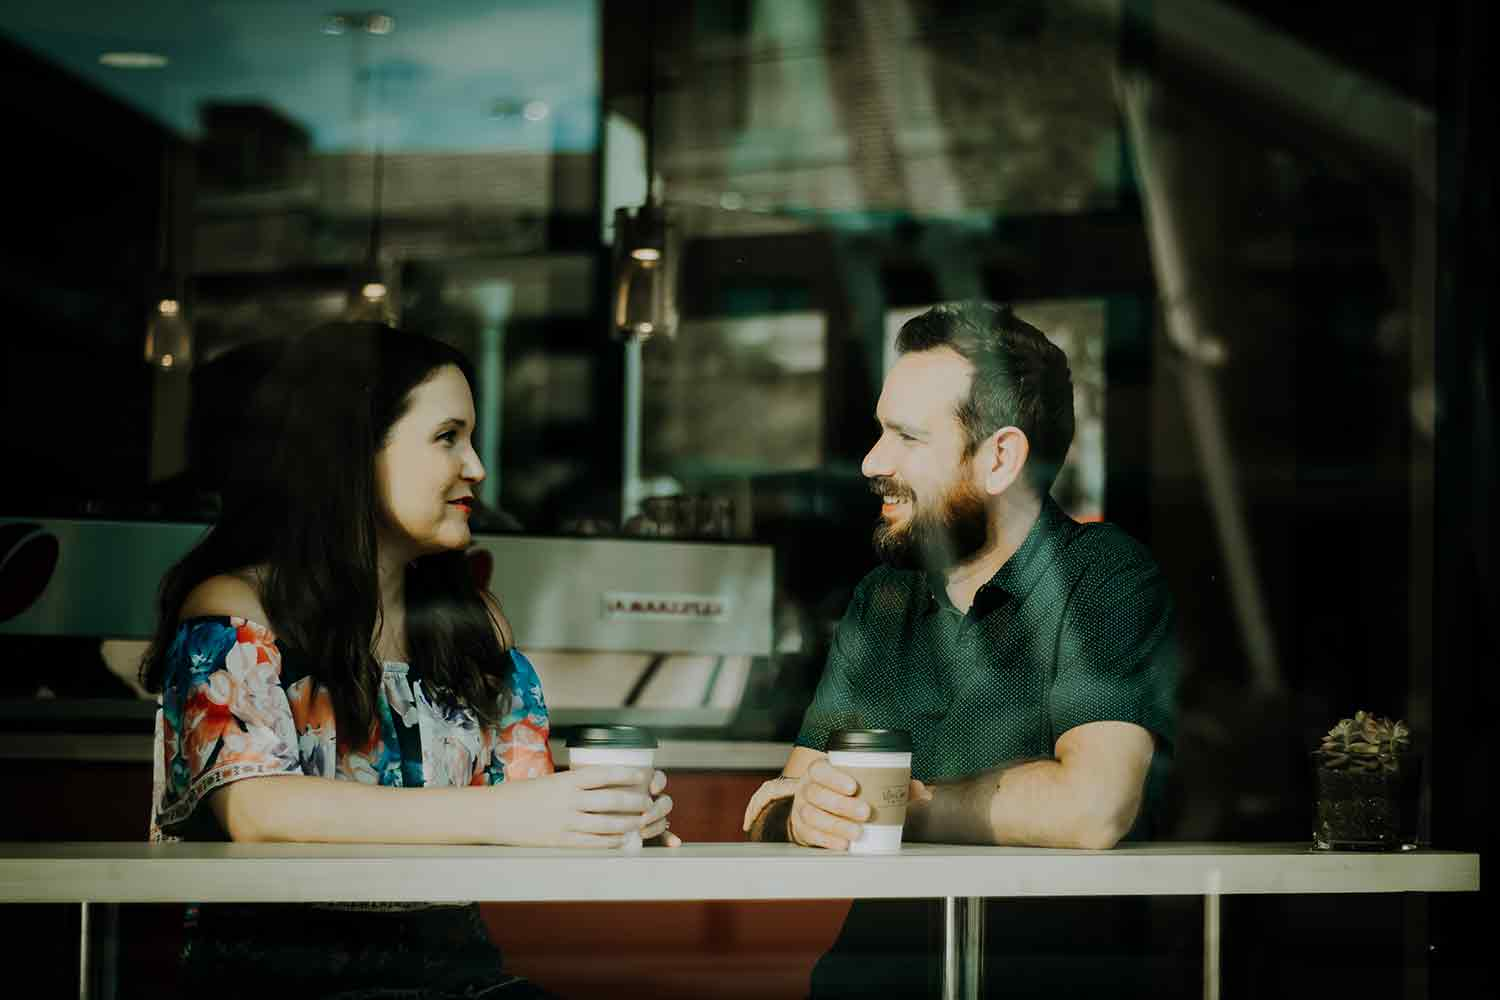 Man-and-woman-talking-over-coffee